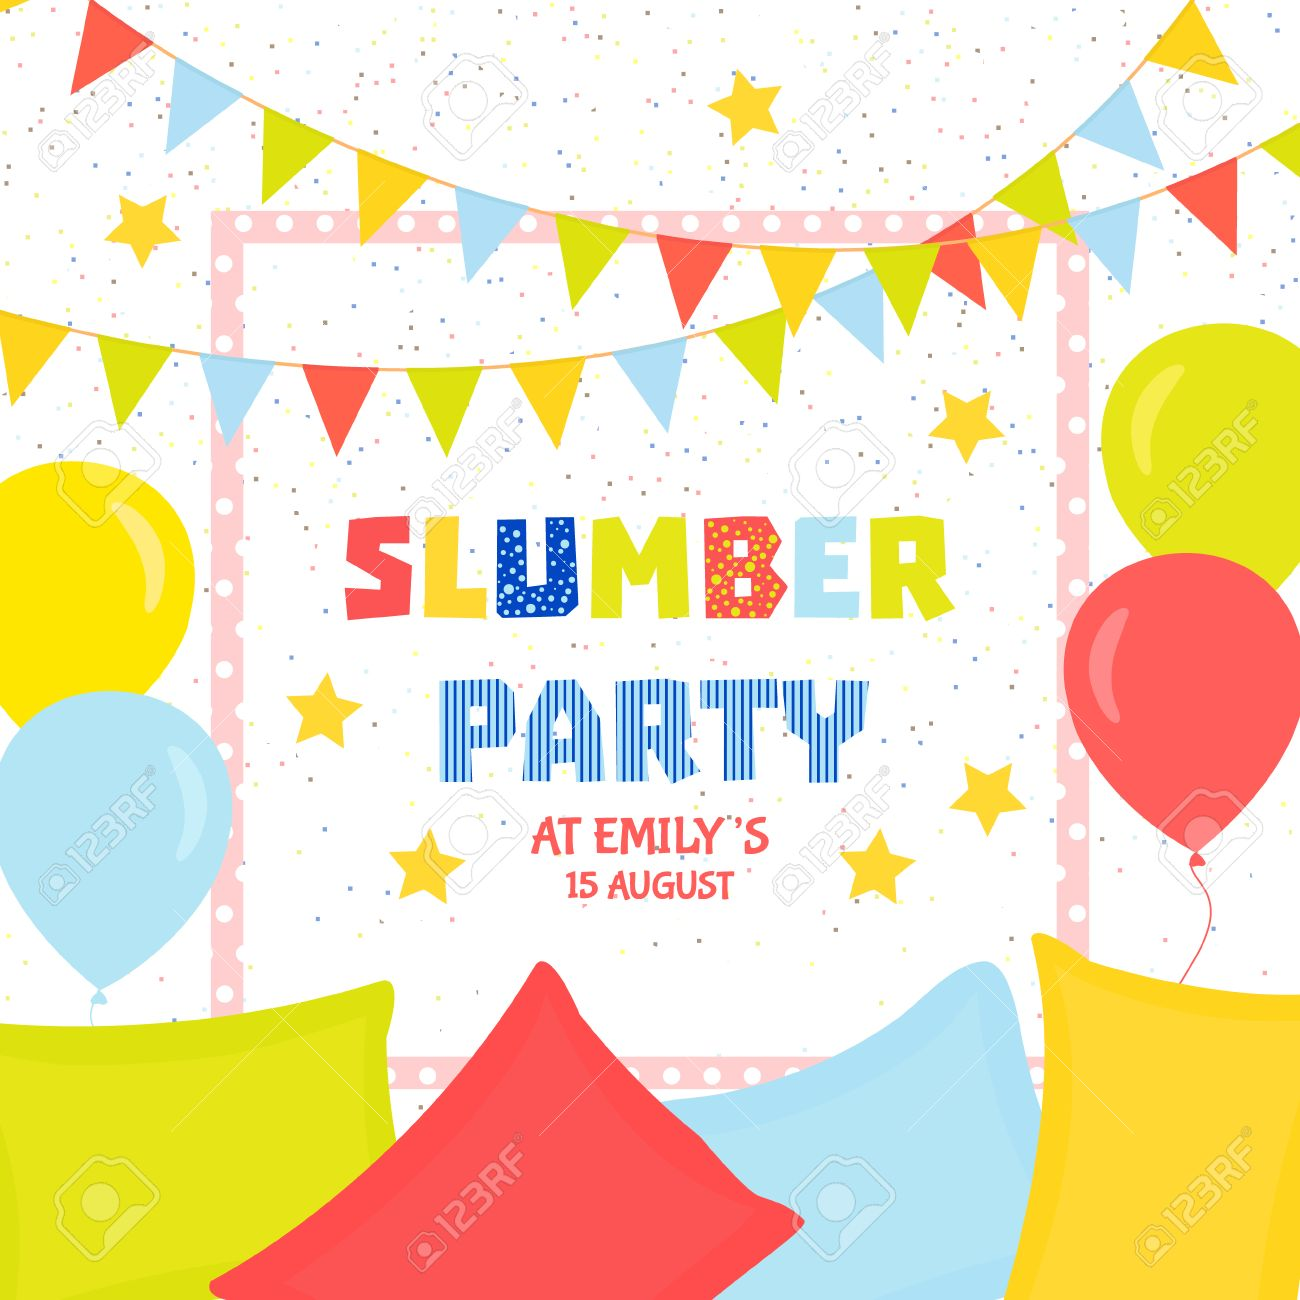 Free Slumber Party Invitation Templates Gallery - Party ...